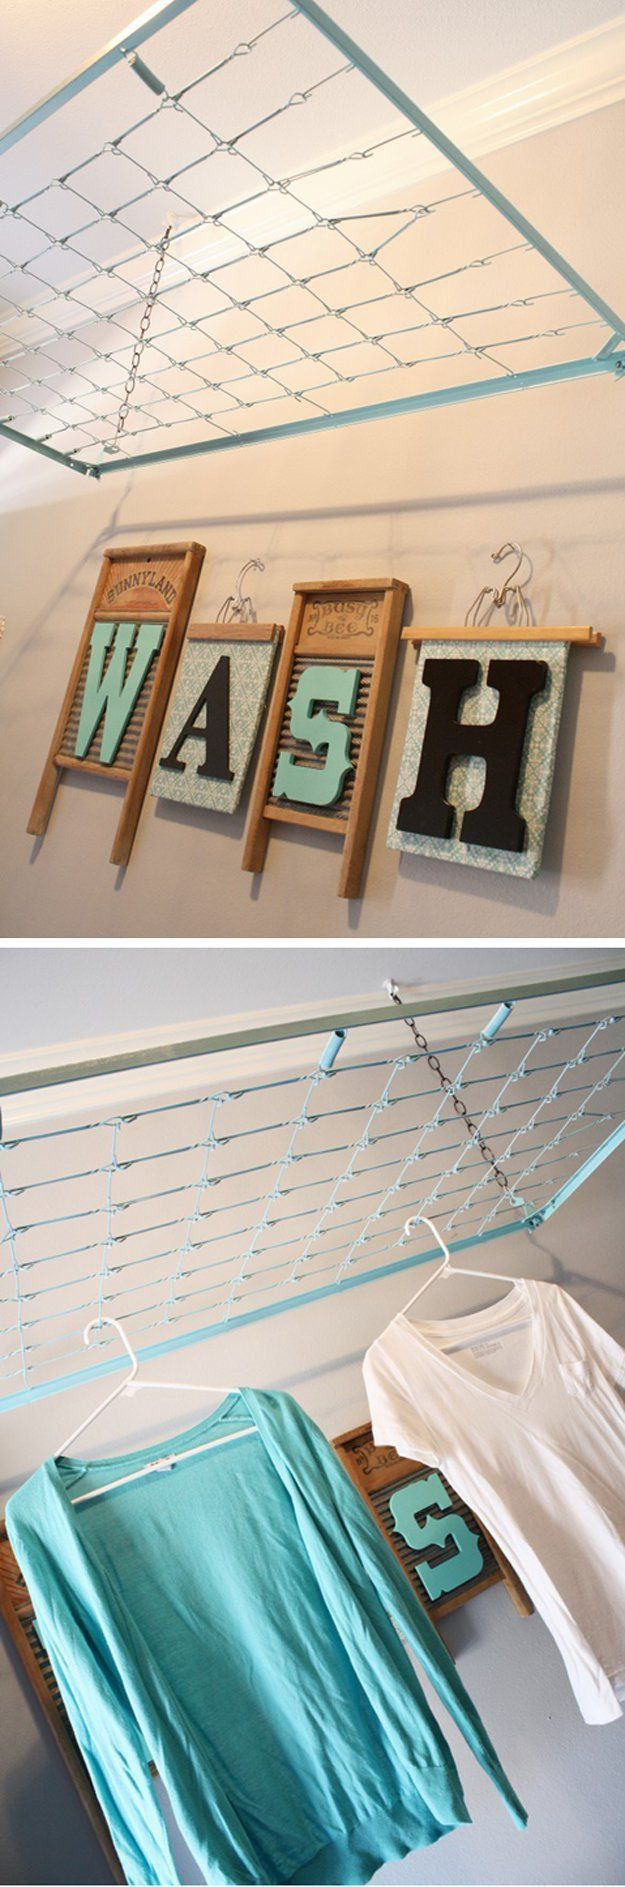 DIY Organization Ideas for Your Laundry Room http://DIYReady.com | Easy DIY Crafts, Fun Projects, & DIY Craft Ideas For Kids & Adults